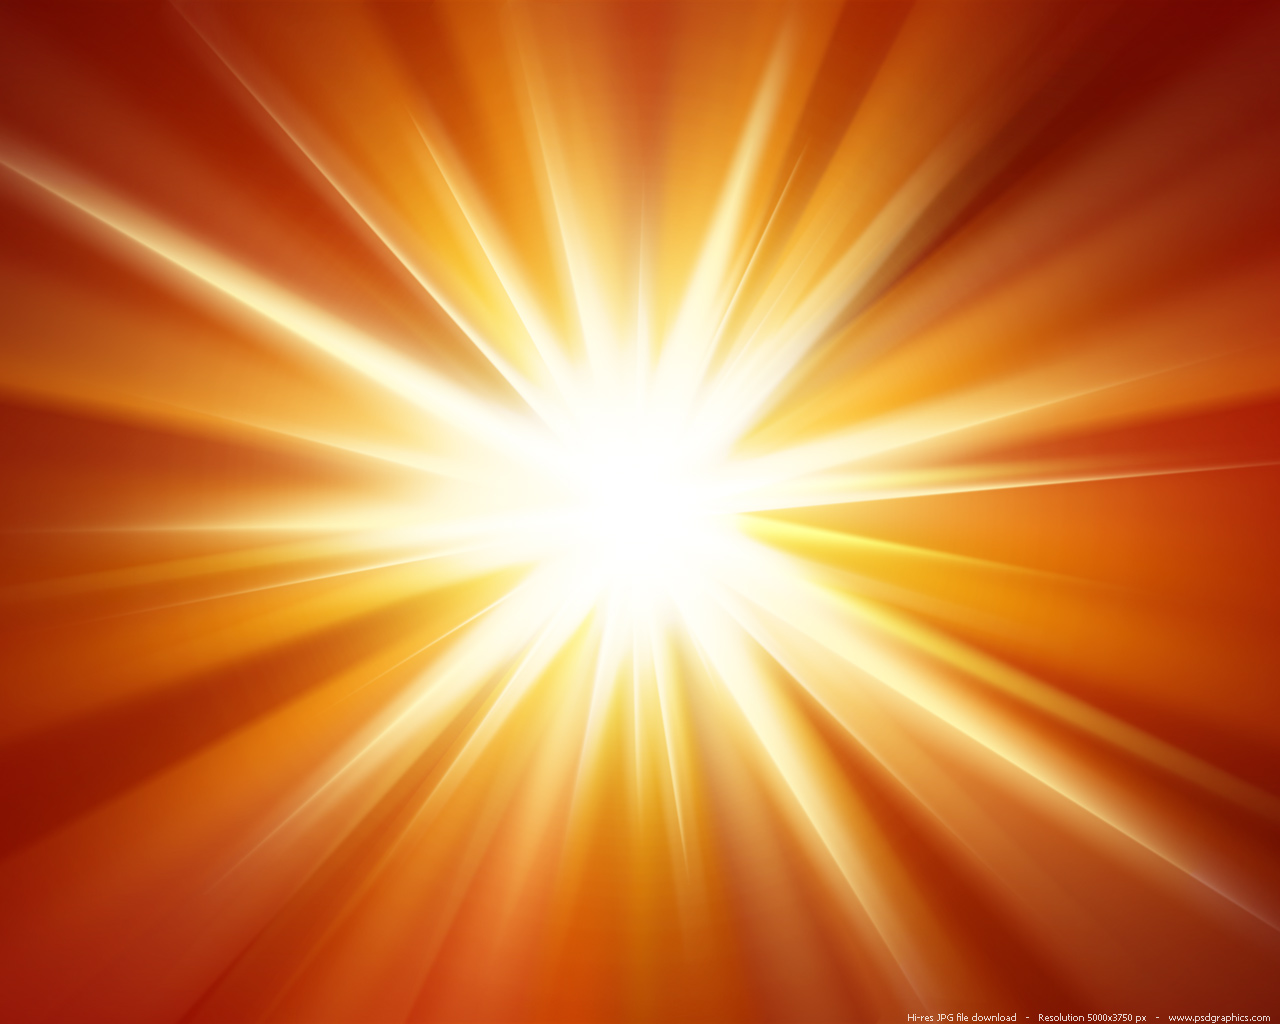 Orange light burst background PSDGraphics 1280x1024